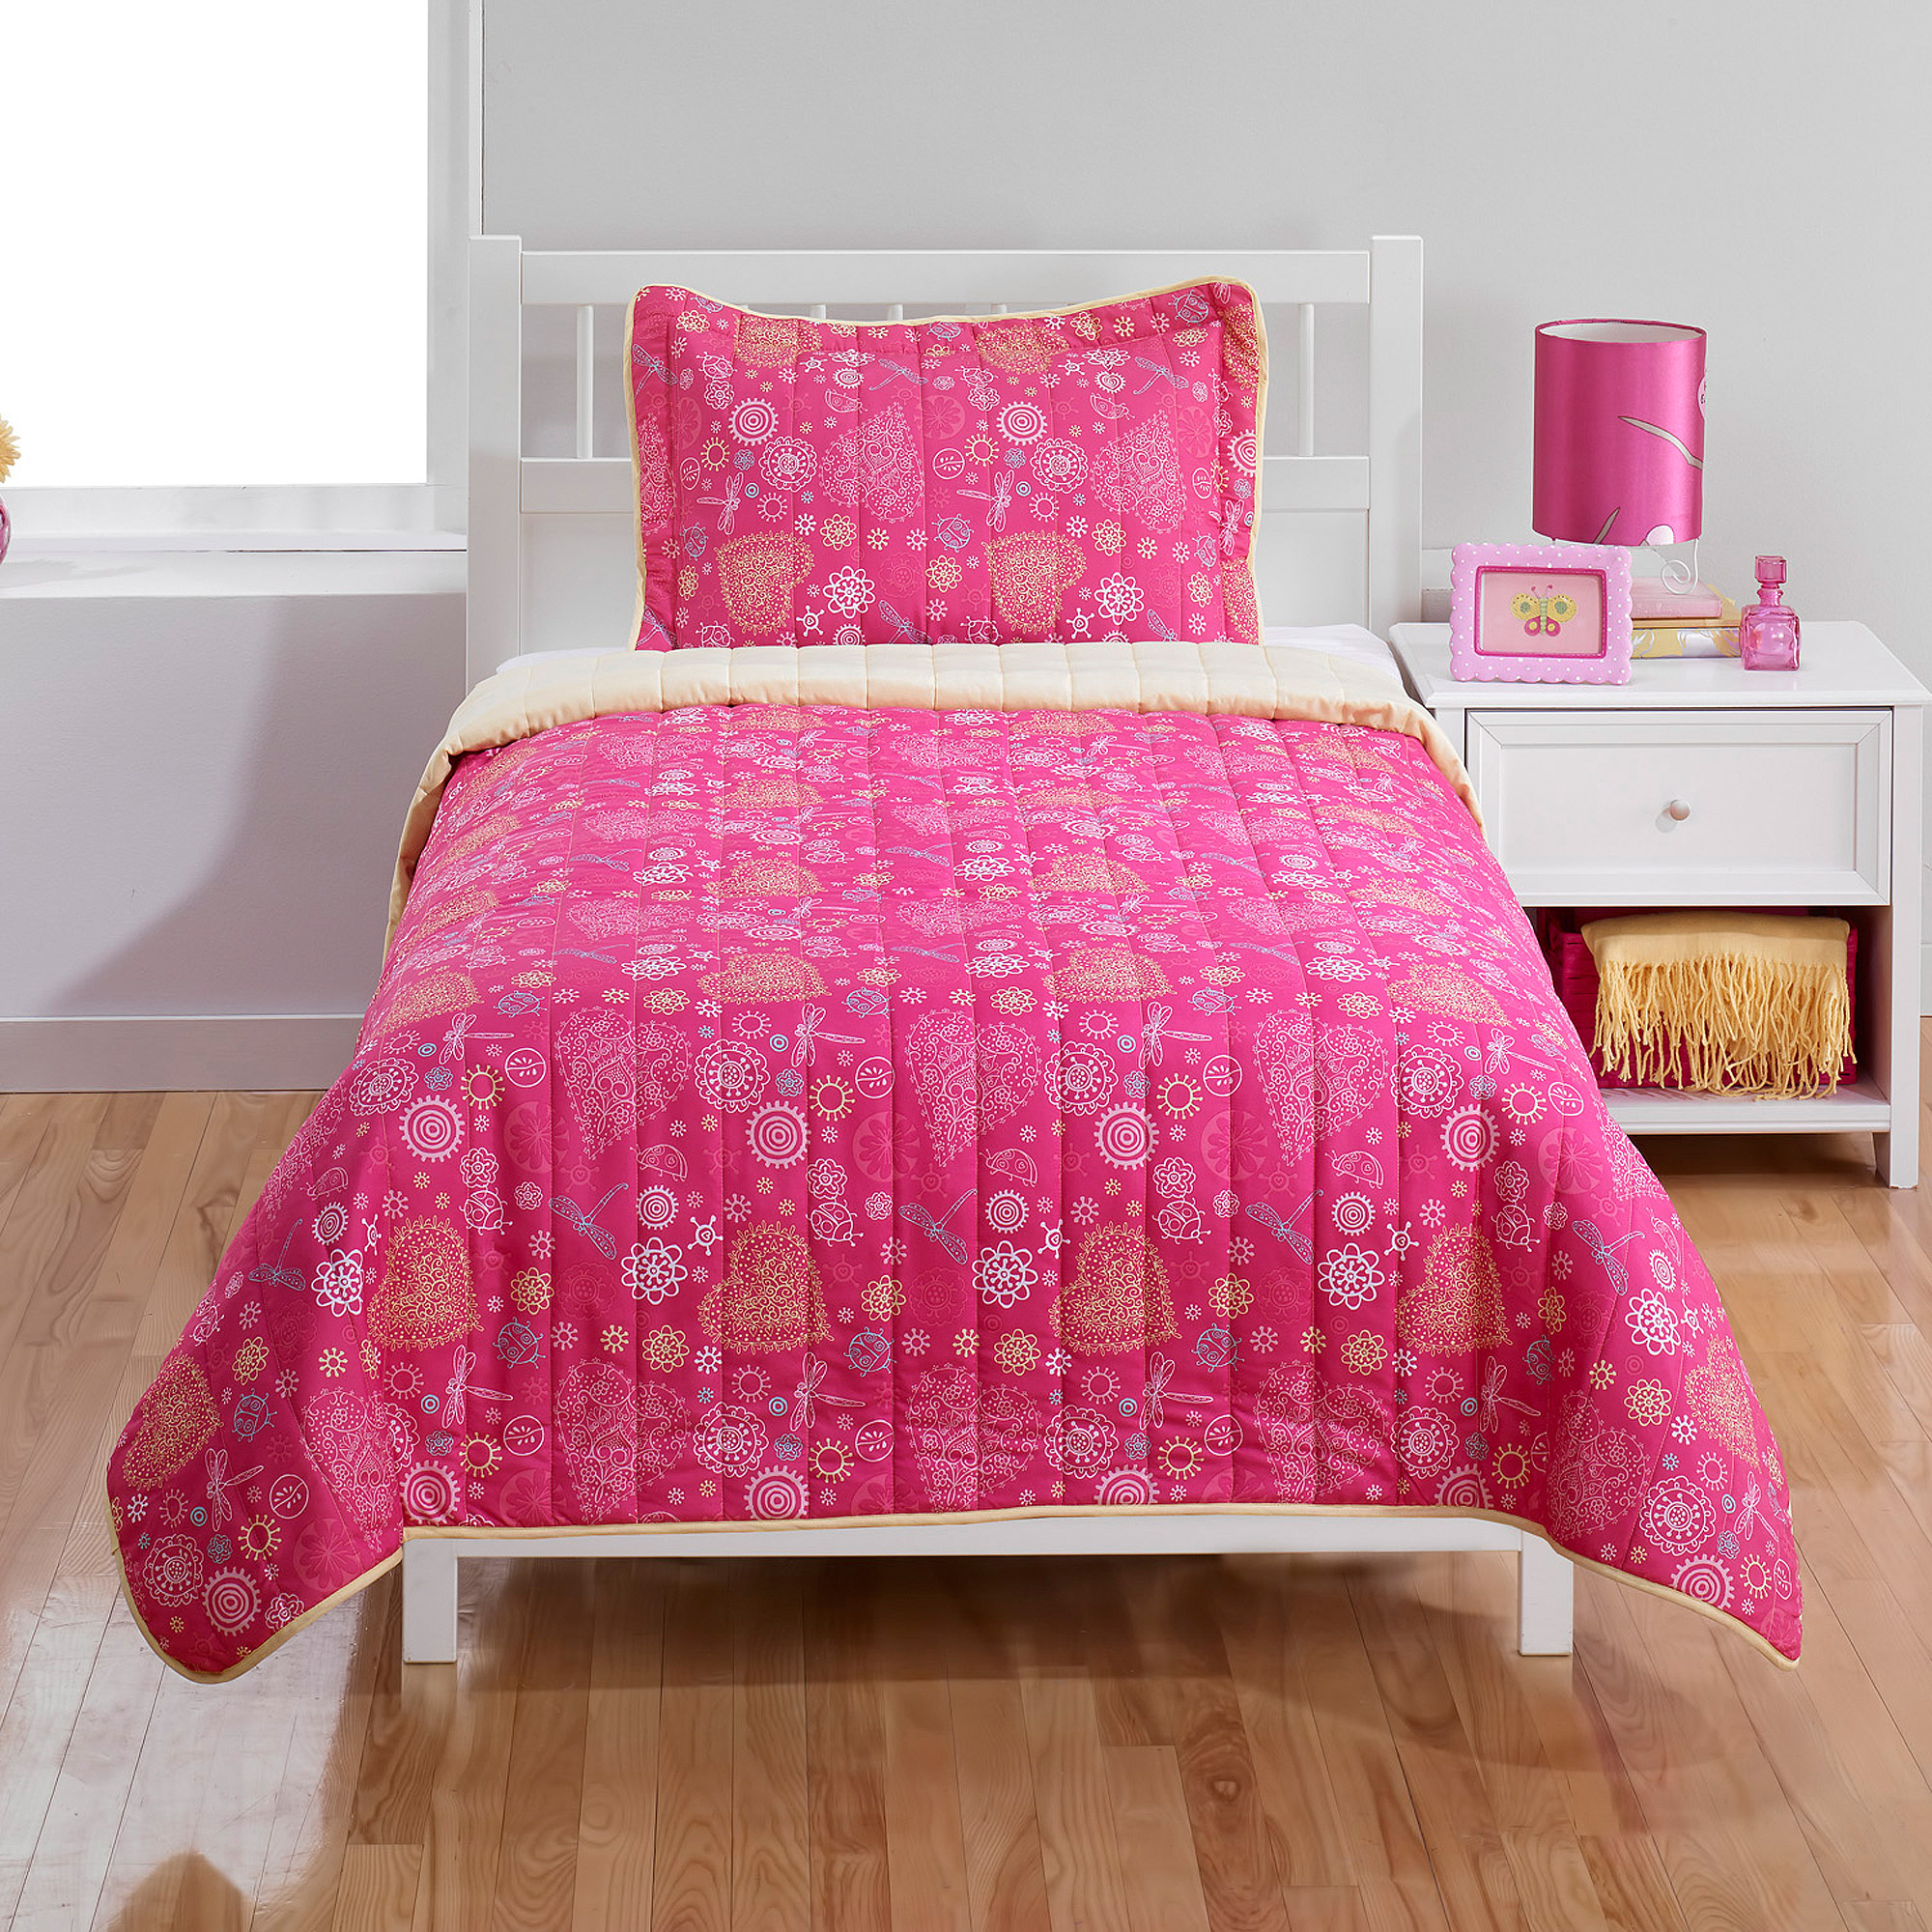 Coral Heart Bedding Quilt Set